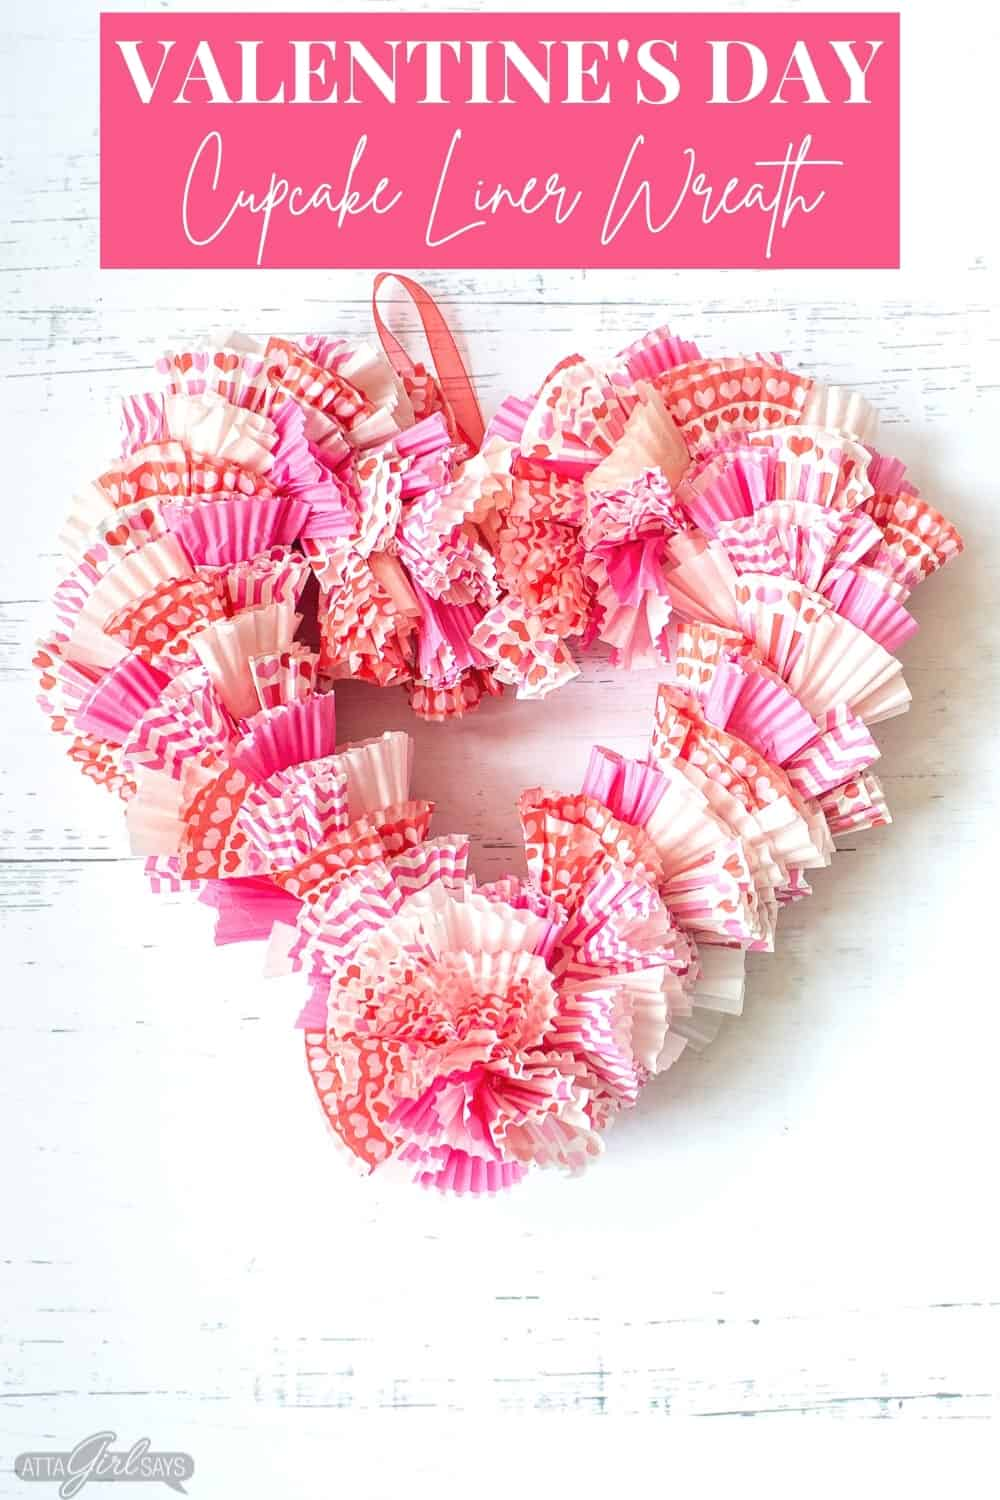 heart shaped wreath made from Valentine's Day cupcake liners